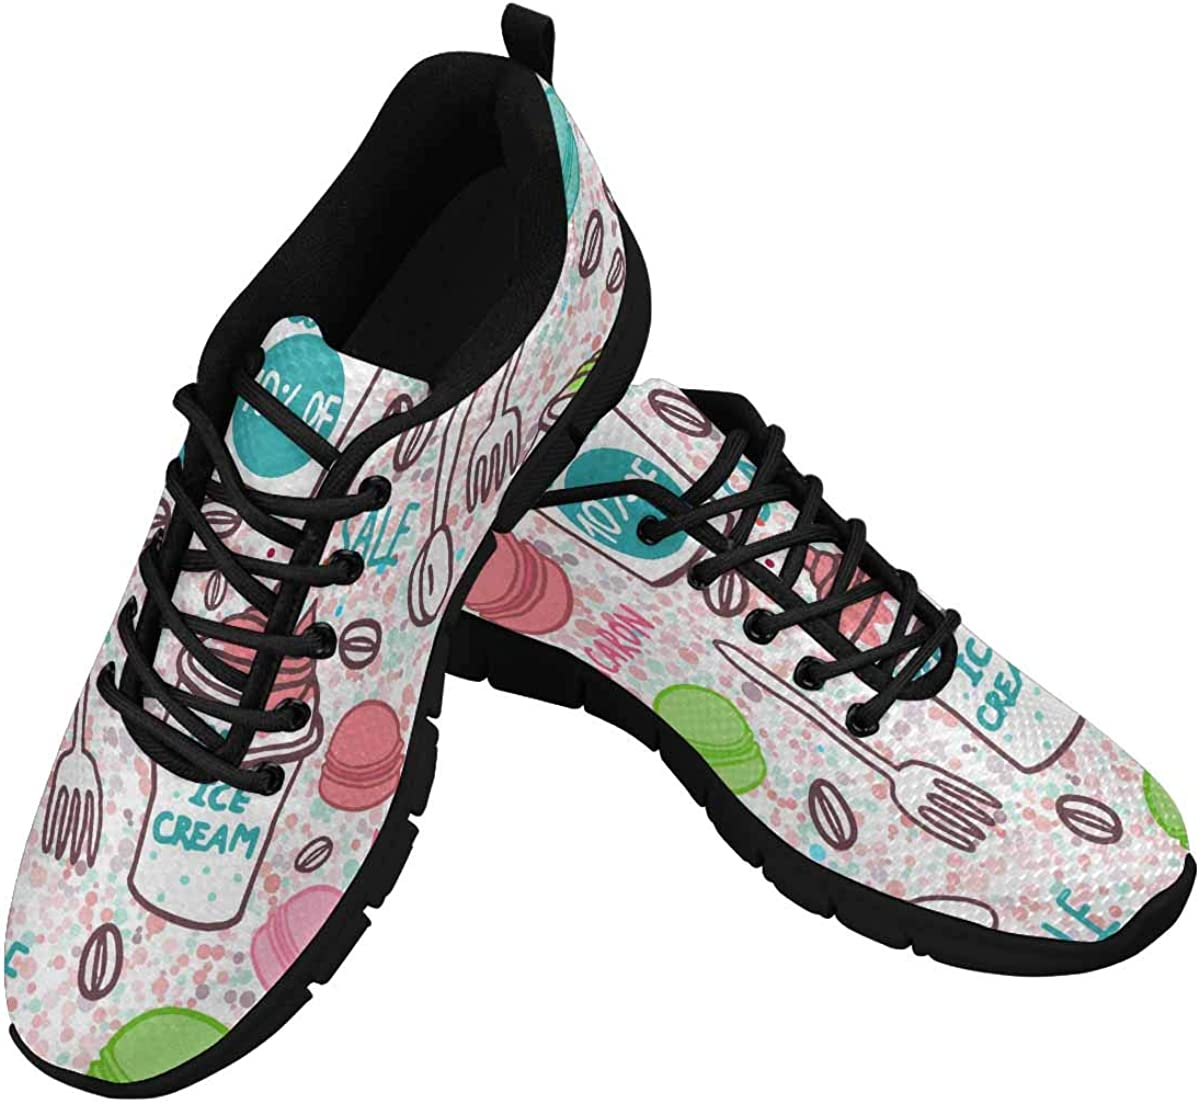 InterestPrint Macarons Background Women's Breathable Comfort Mesh Fashion Sneakers